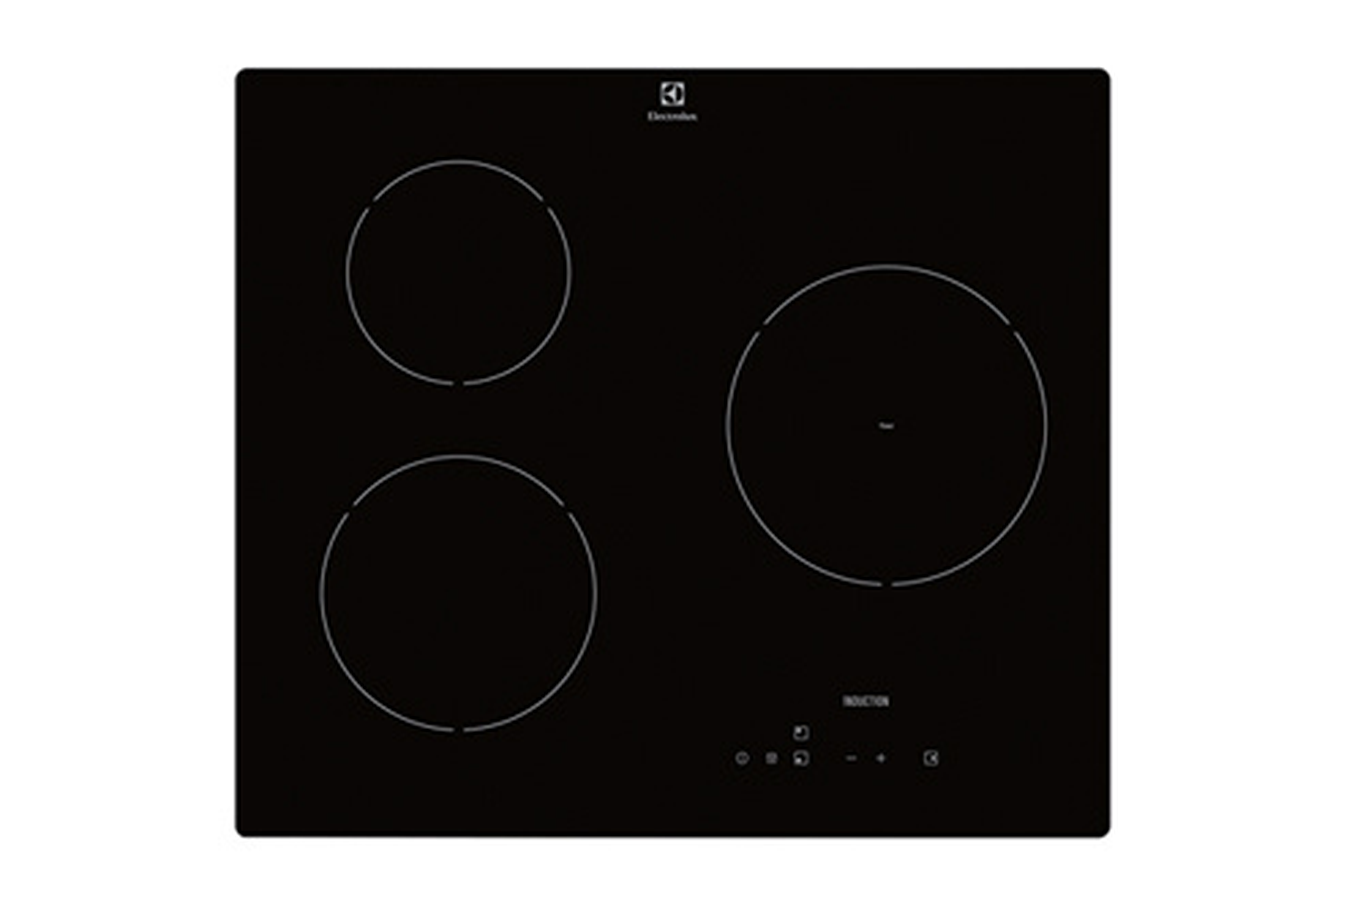 Plaque induction electrolux ehh6230iok noir ehh6230iok - Electrolux ehl7640fok table induction ...